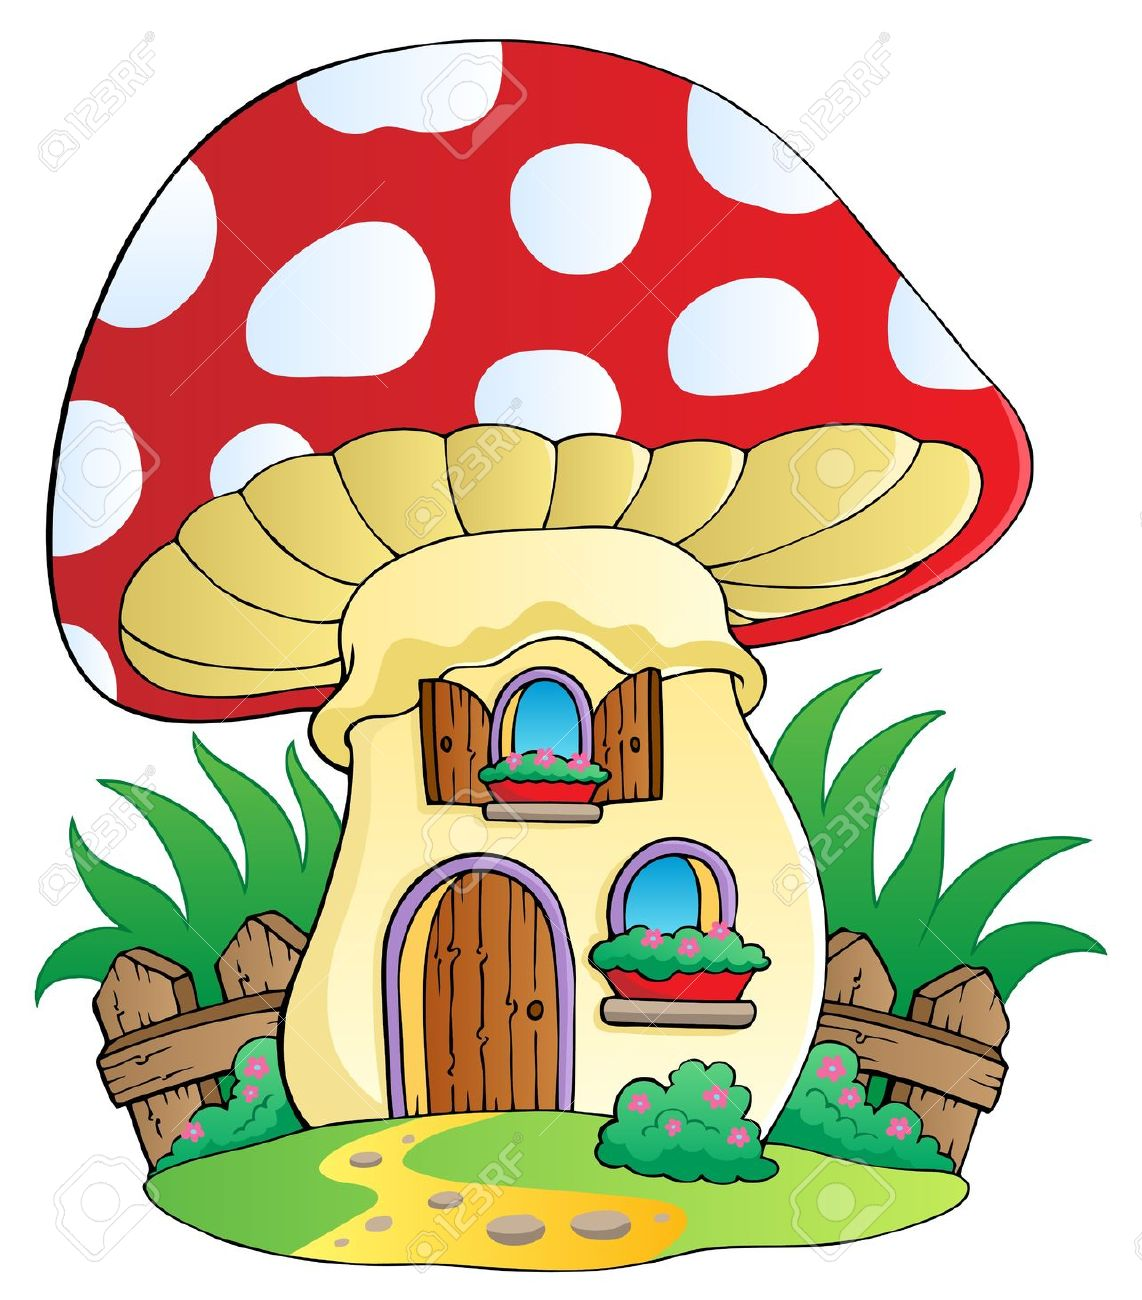 Funghi Casa Cartoon.